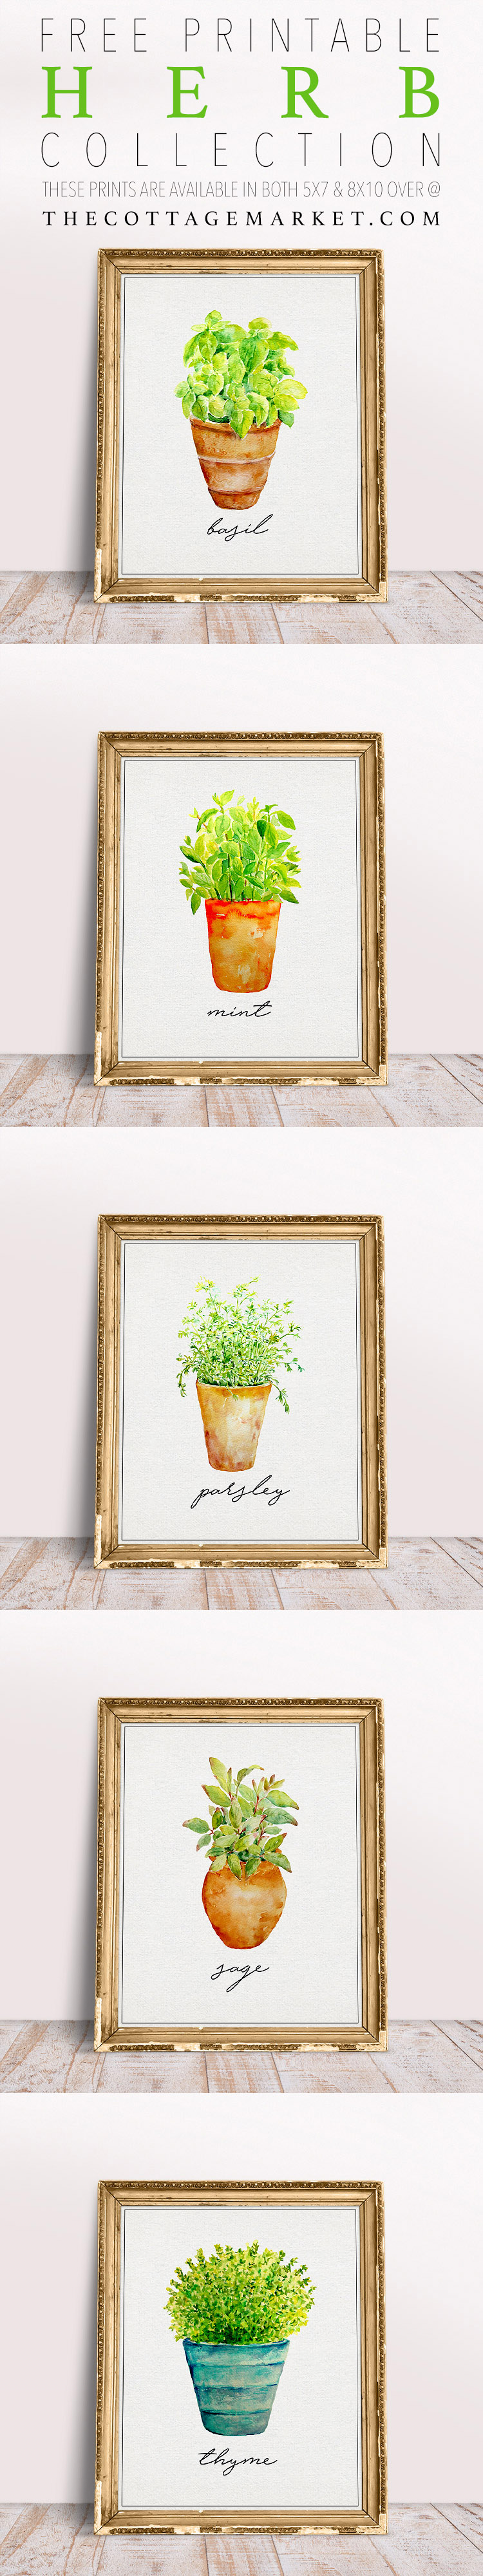 This collection of herb inspired printables are simple and elegant.